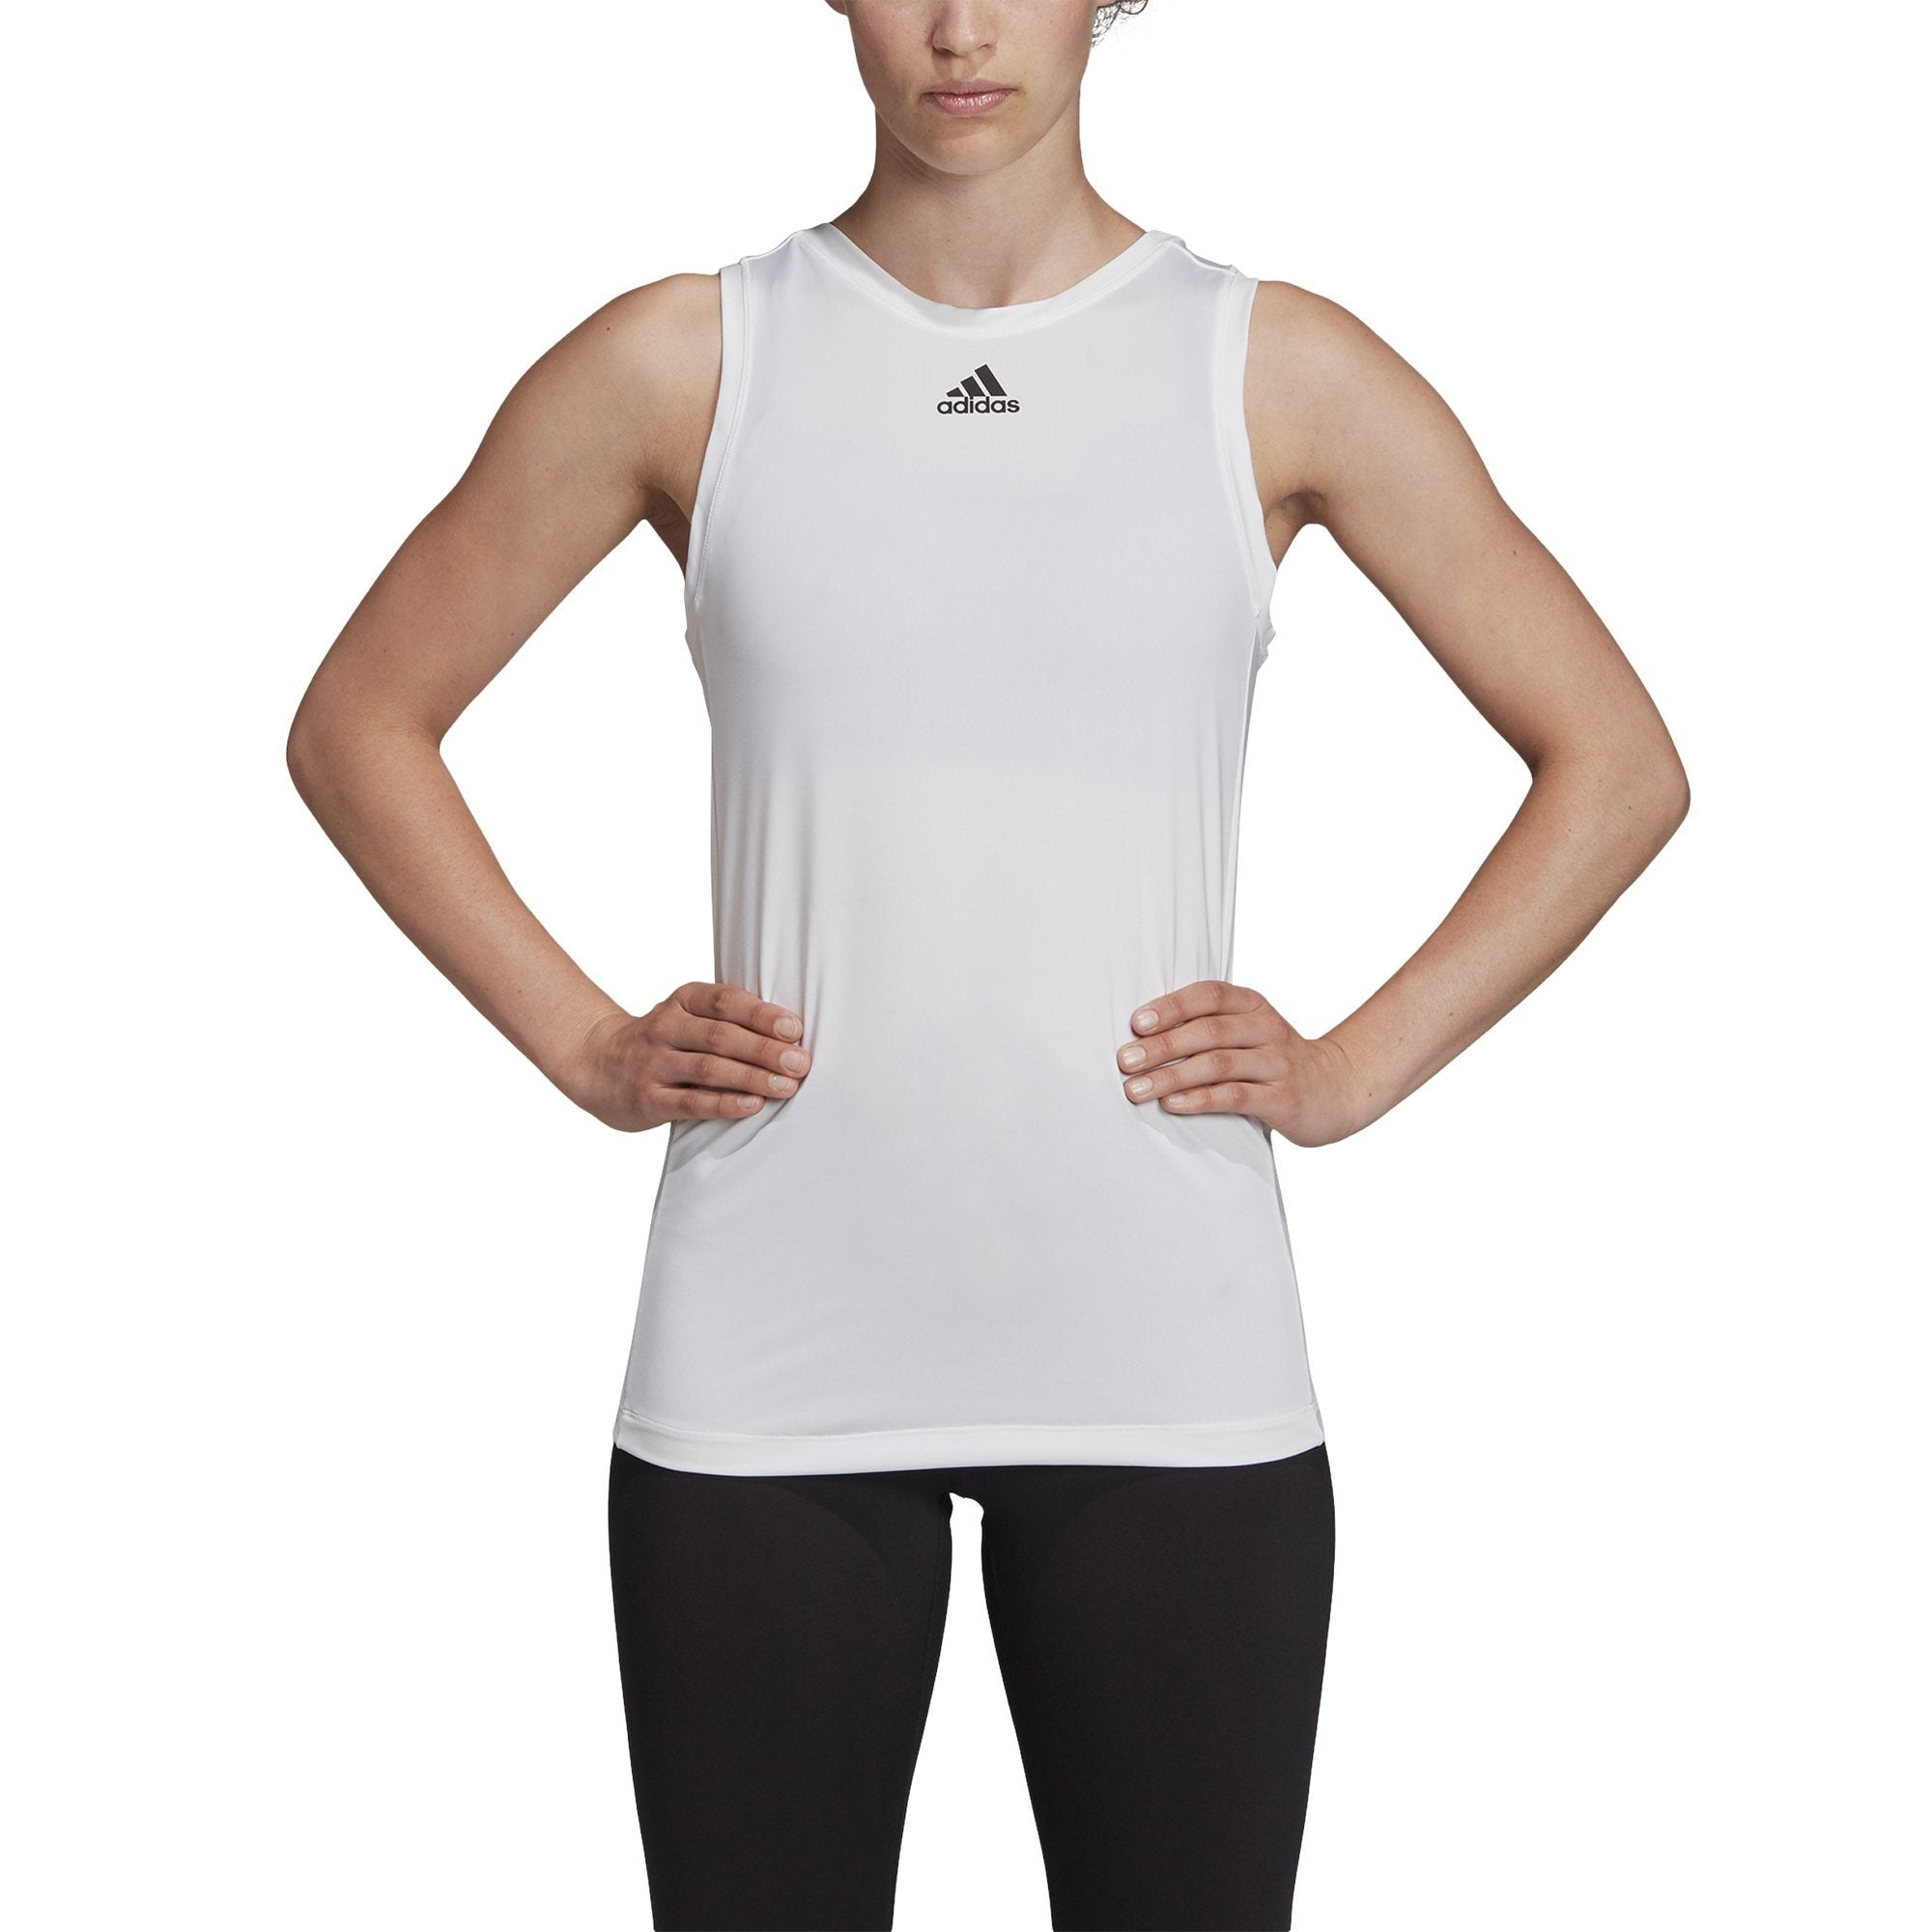 Adidas 2Way 3 Stripe Tie Tank - White SP-ApparelTanks-Womens Adidas